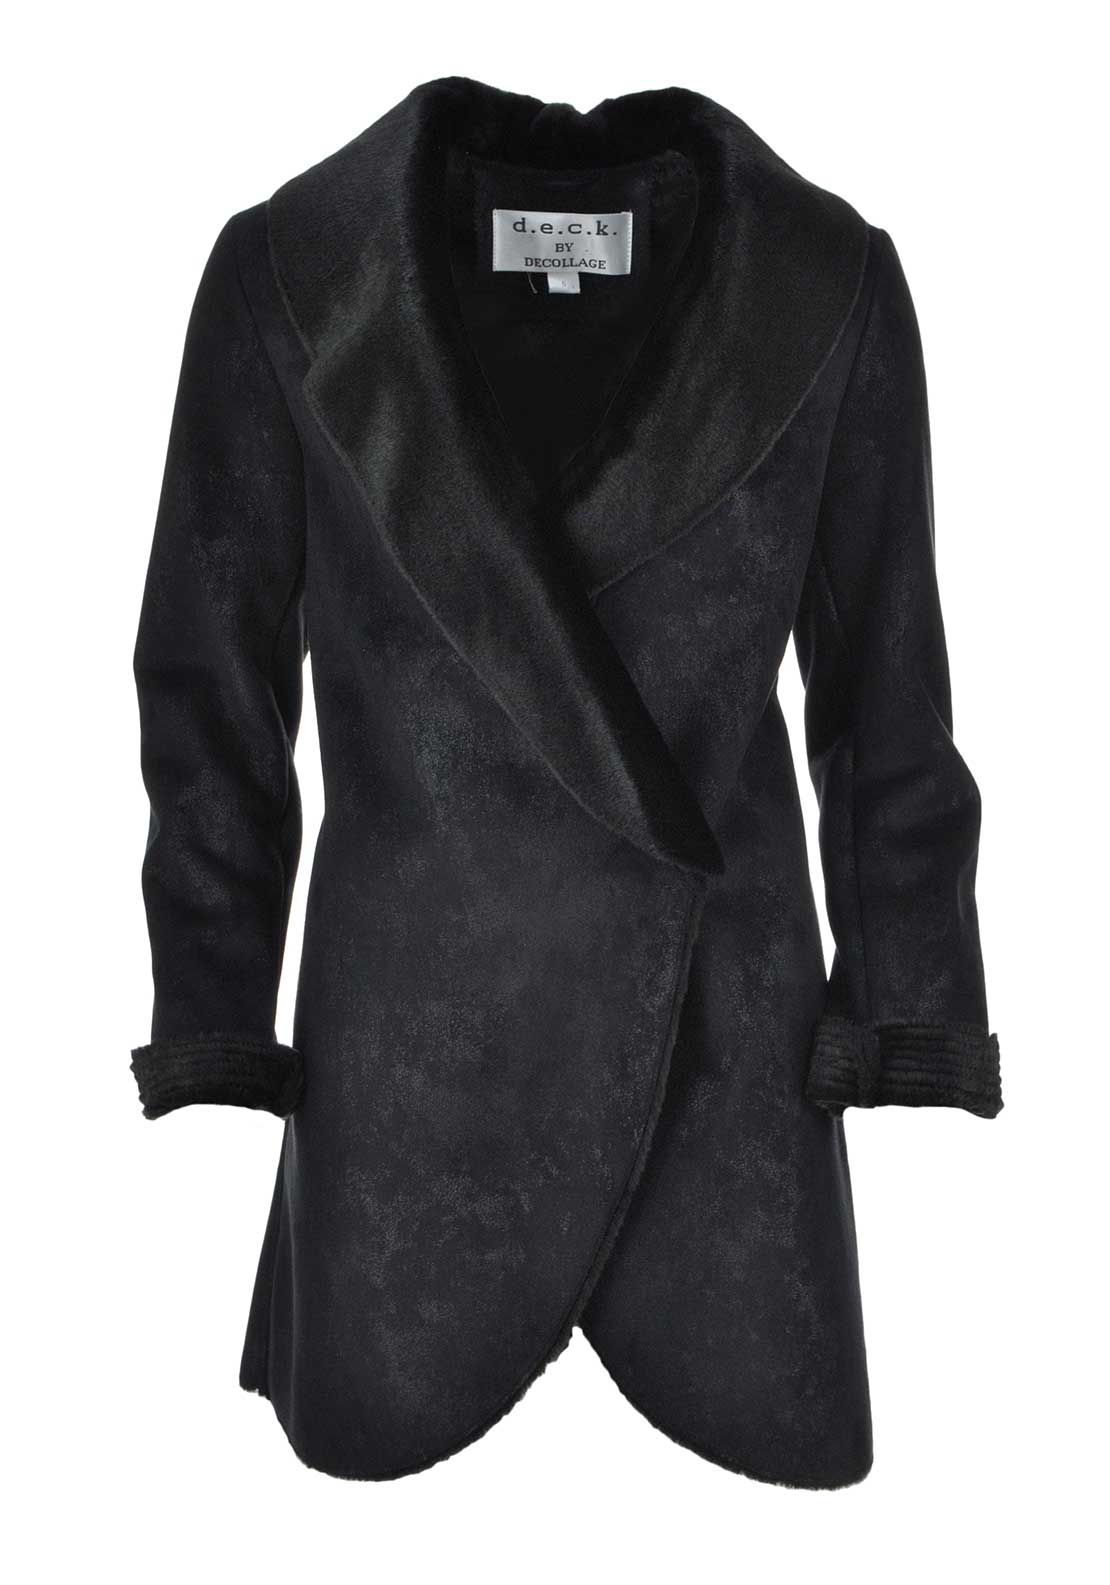 d.e.c.k. by Decollage Faux Fur Trim Suedette Coat, Black